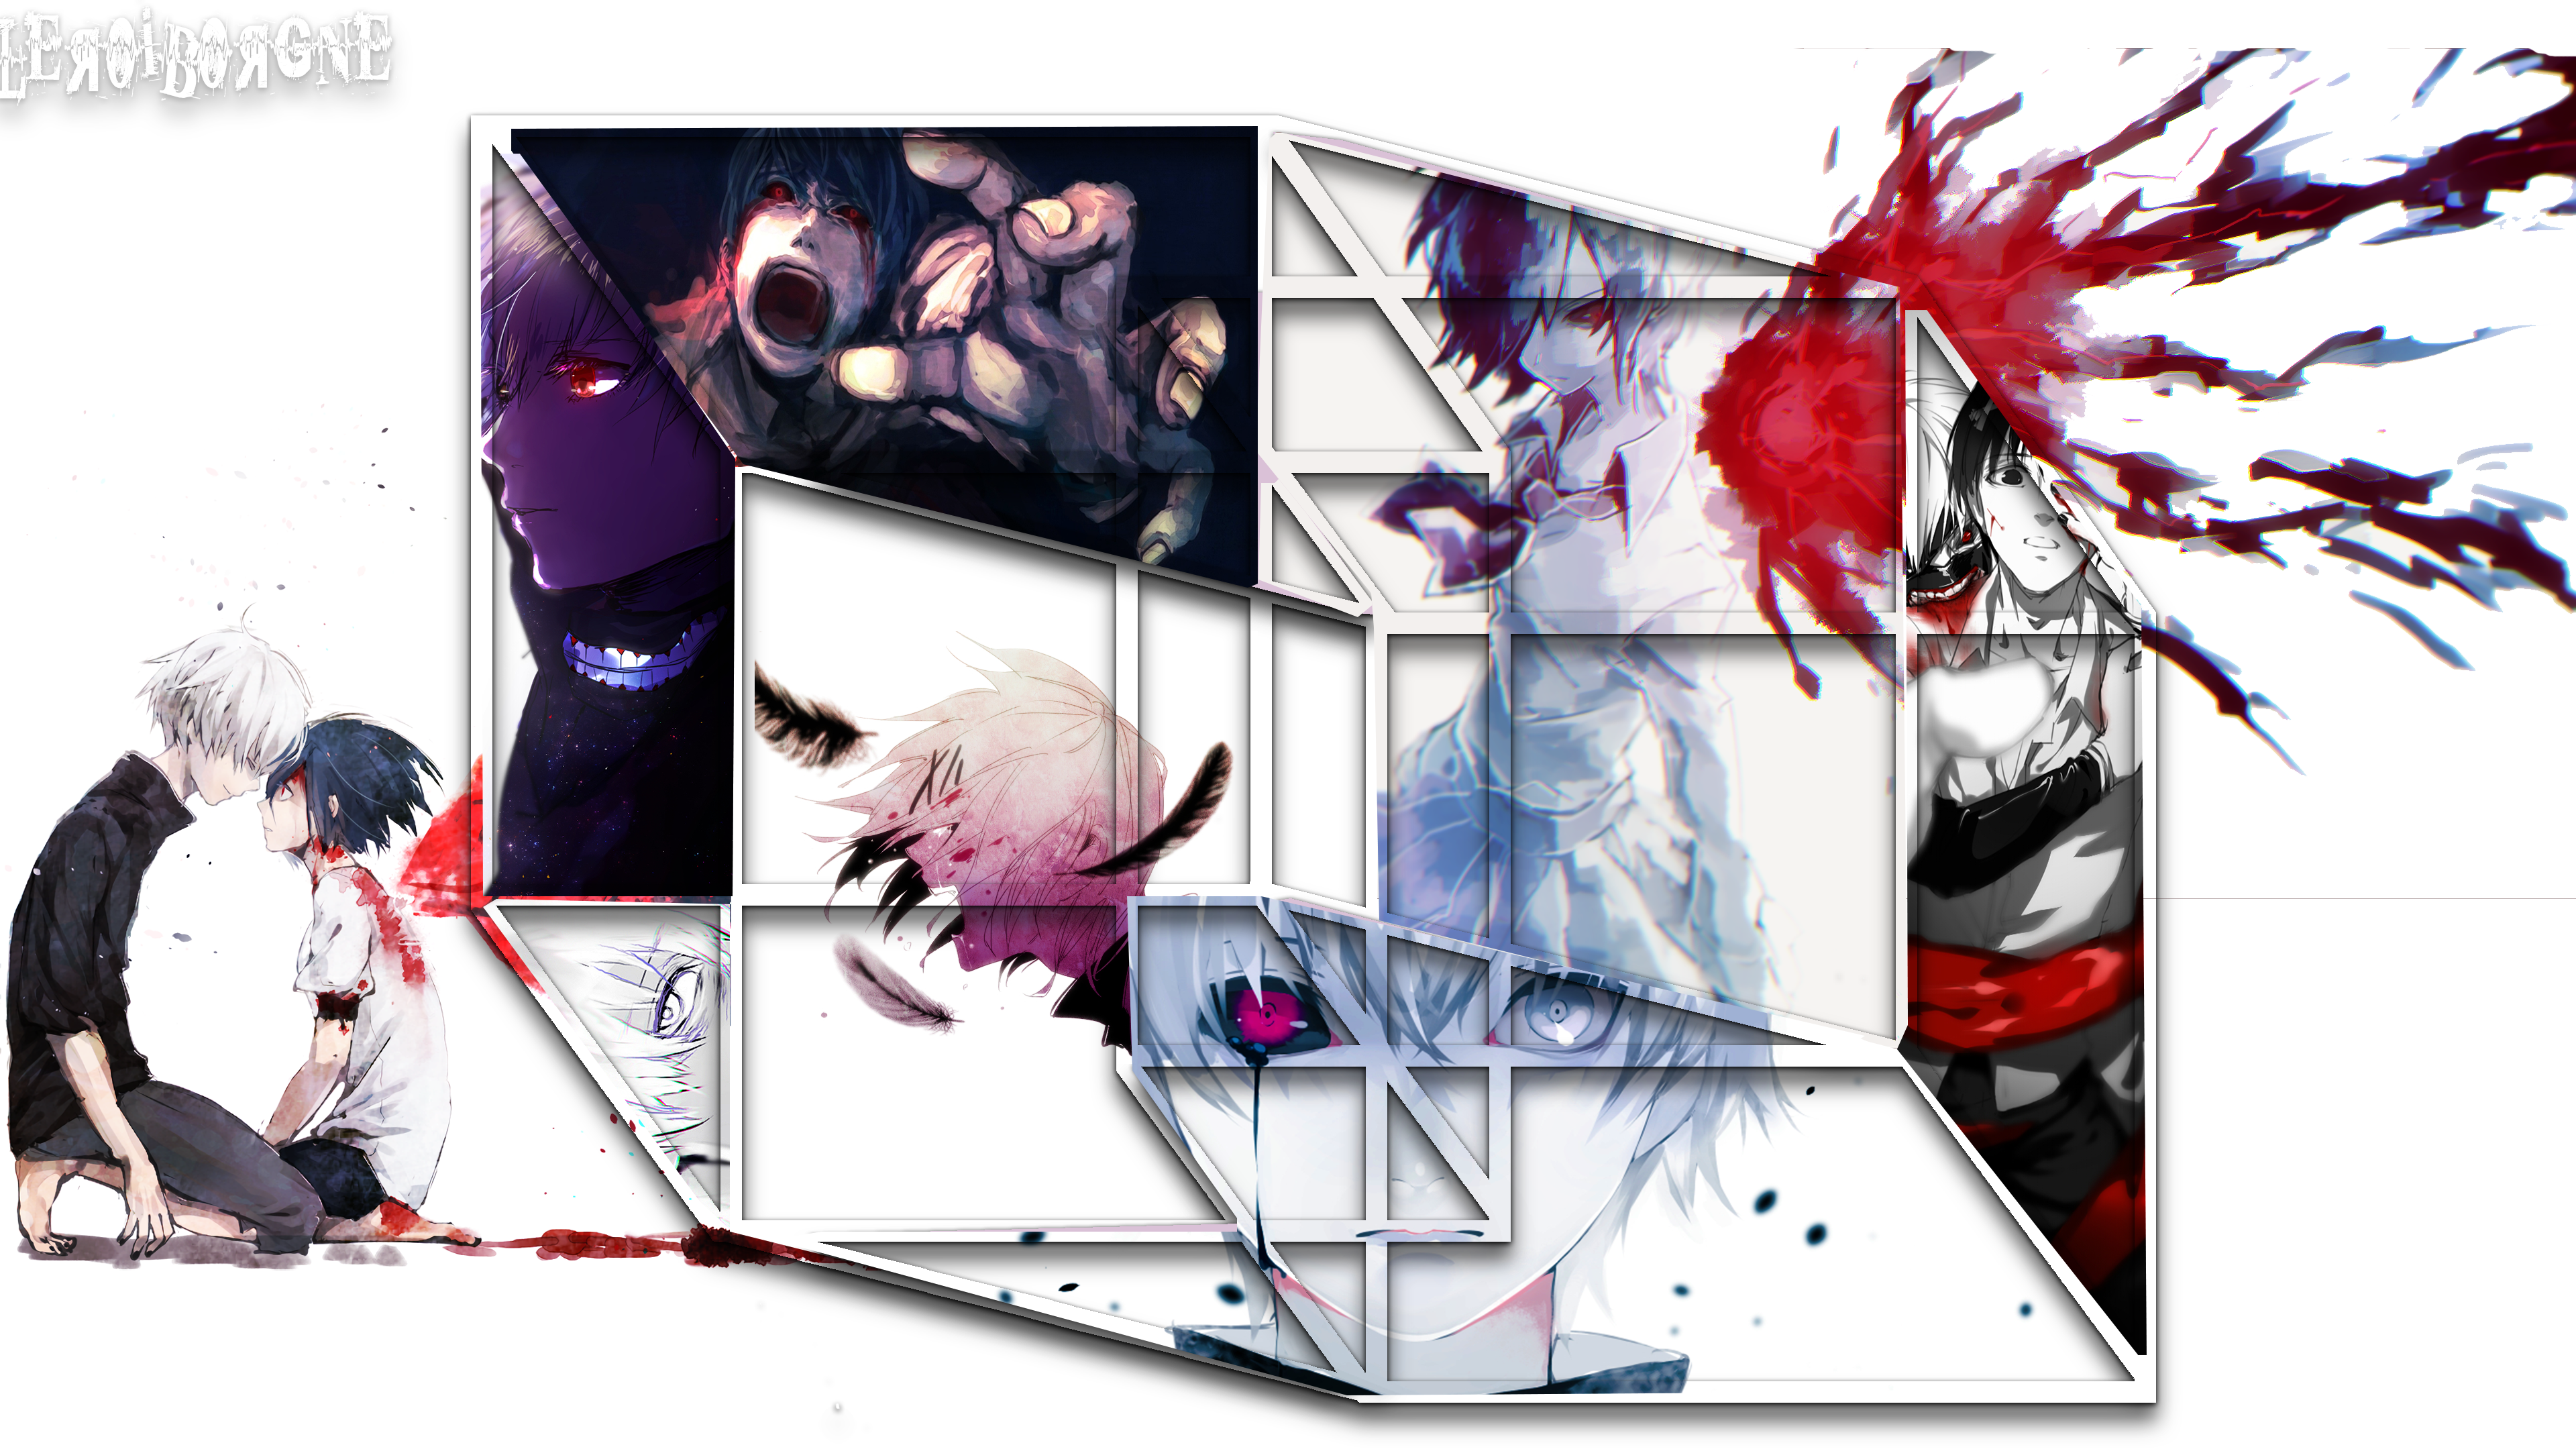 Tokyo Ghoul 4k Ultra HD Wallpaper | Background Image | 3840x2160 | ID:896800 - Wallpaper Abyss